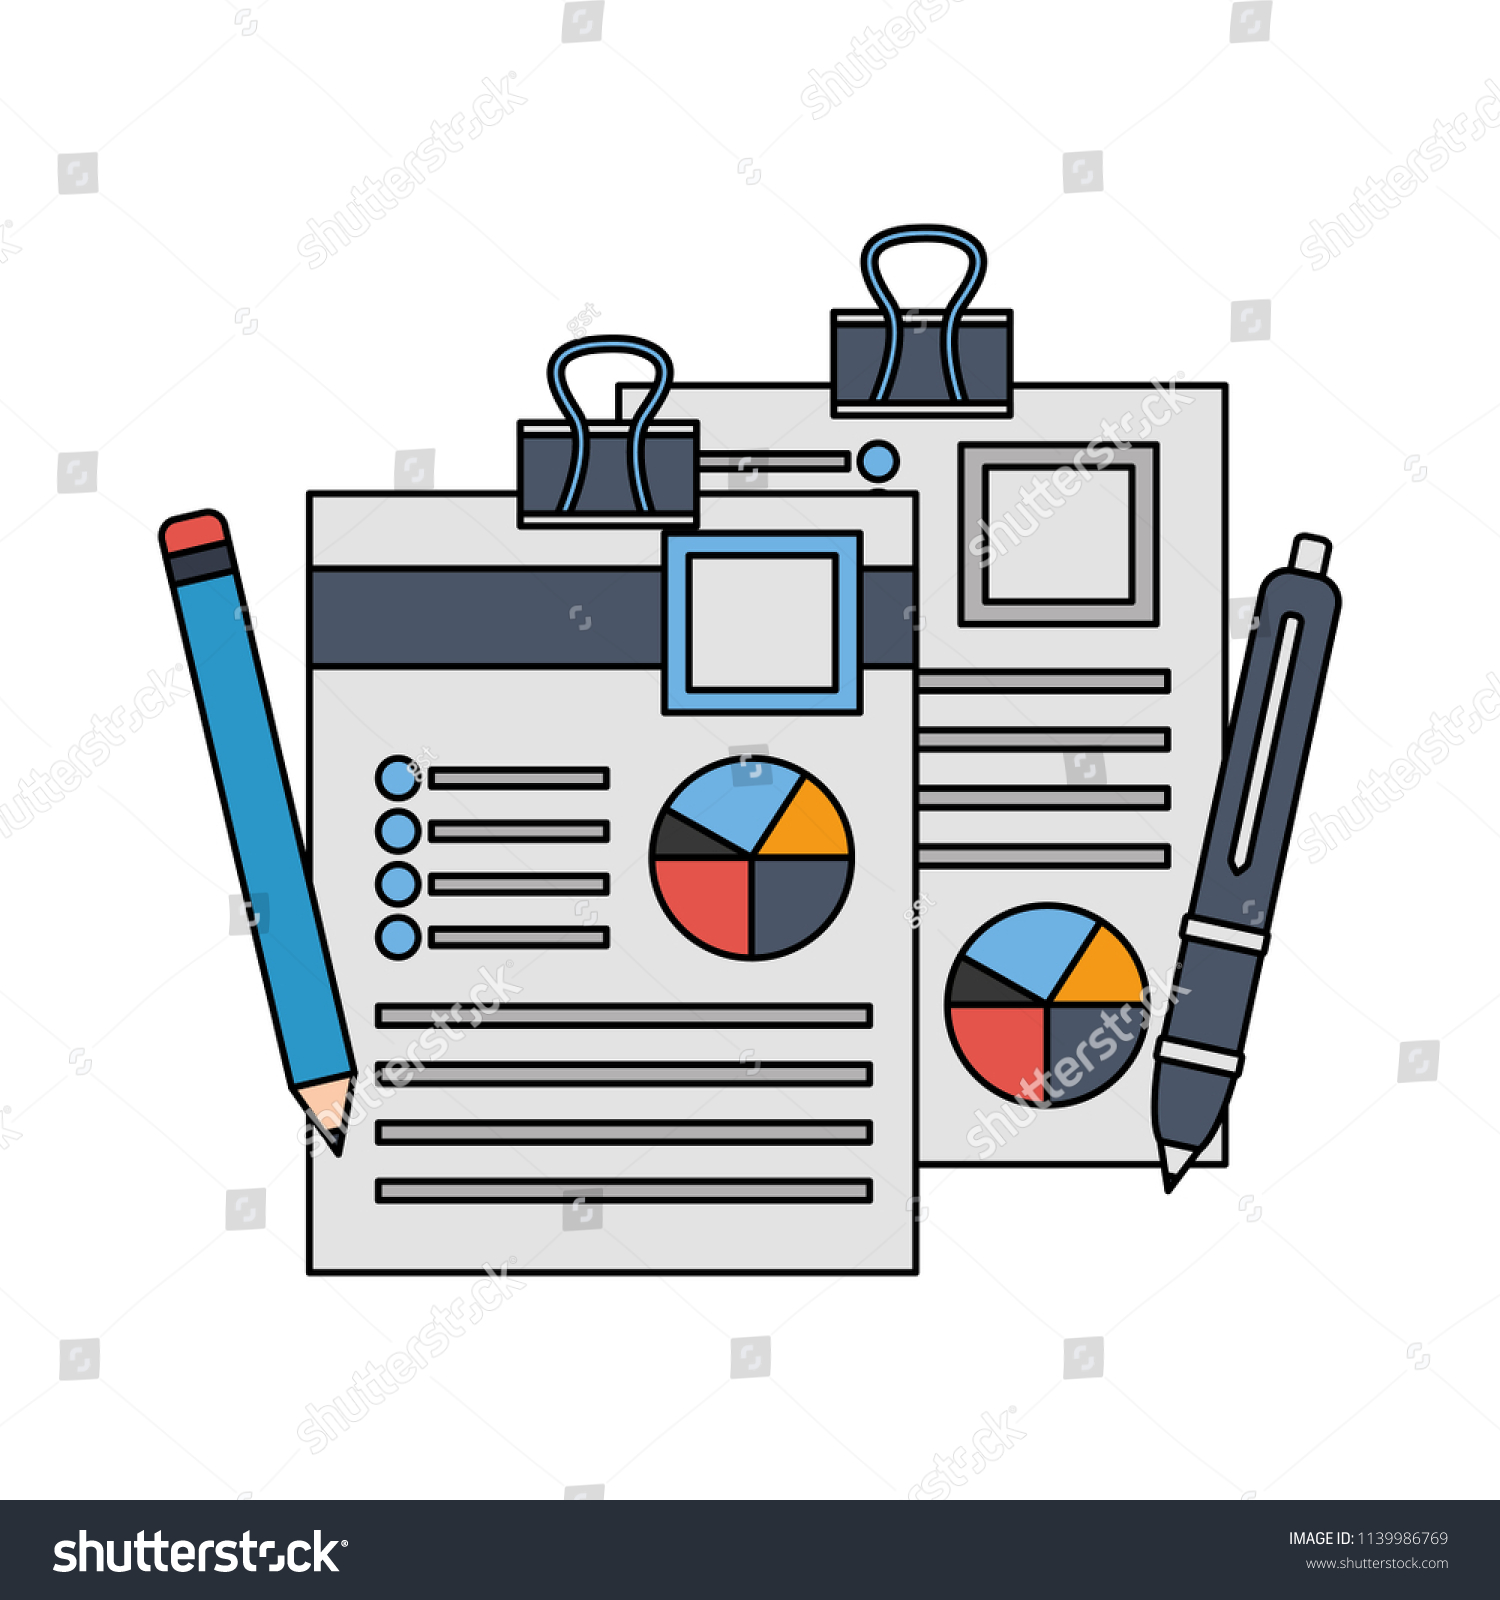 hight resolution of office paper diagram finance pen and pencil